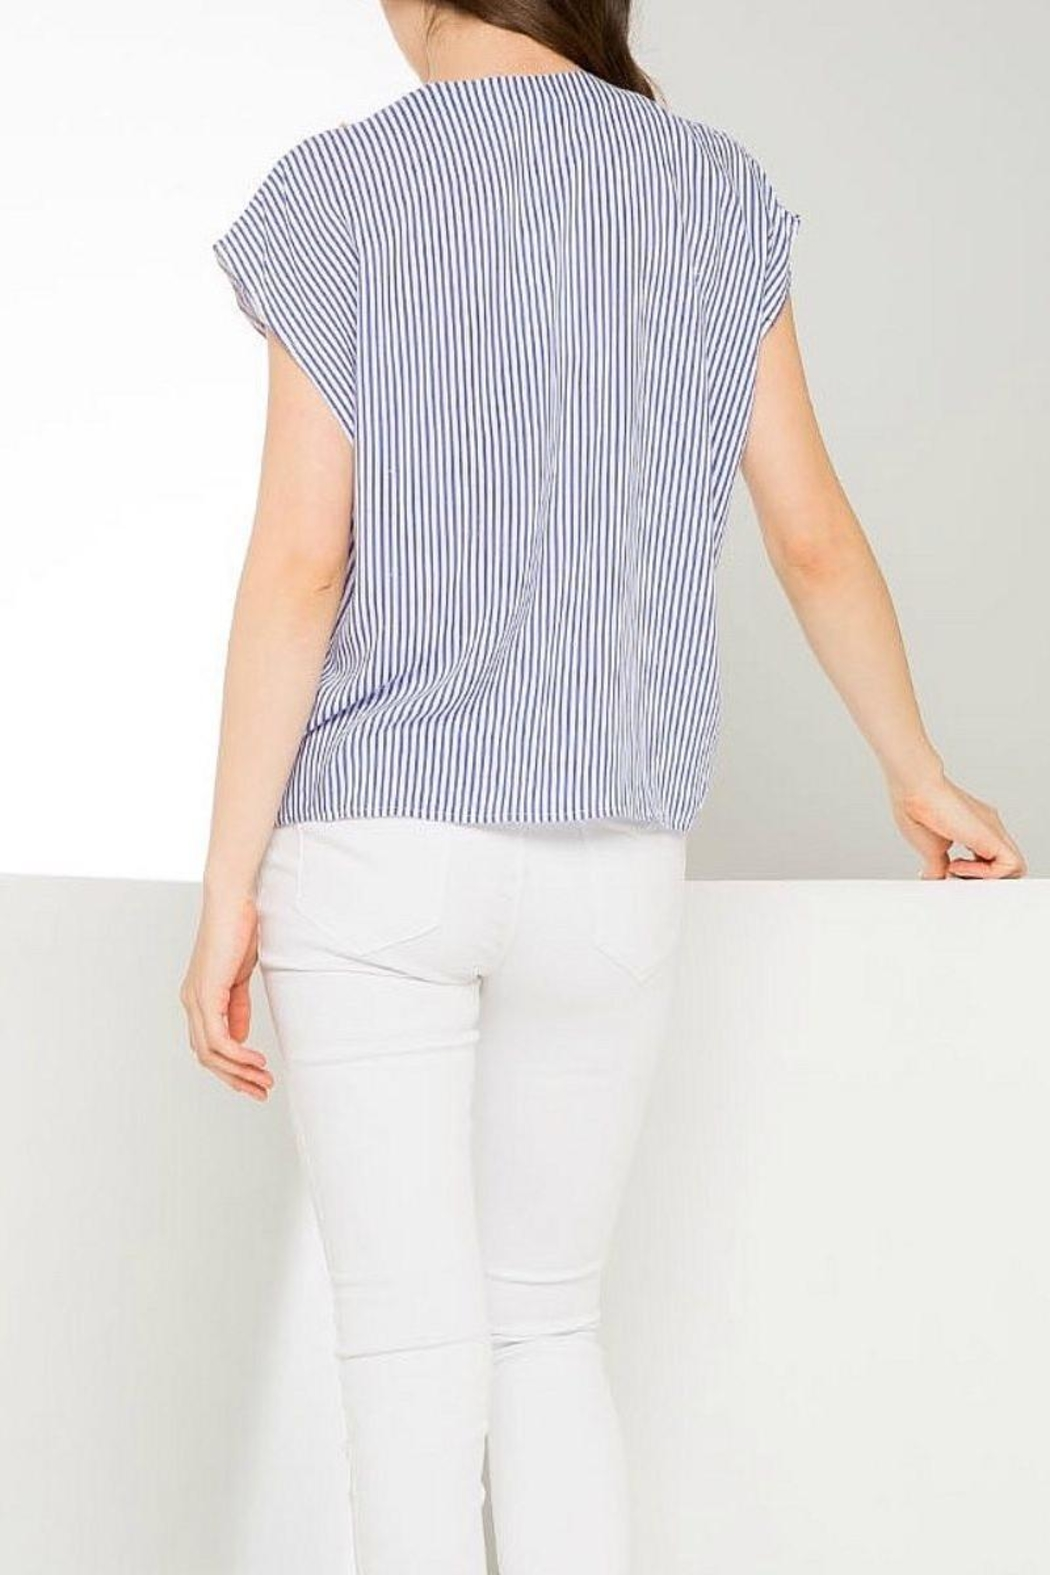 THML Clothing Bright Striped Shirt - Front Full Image